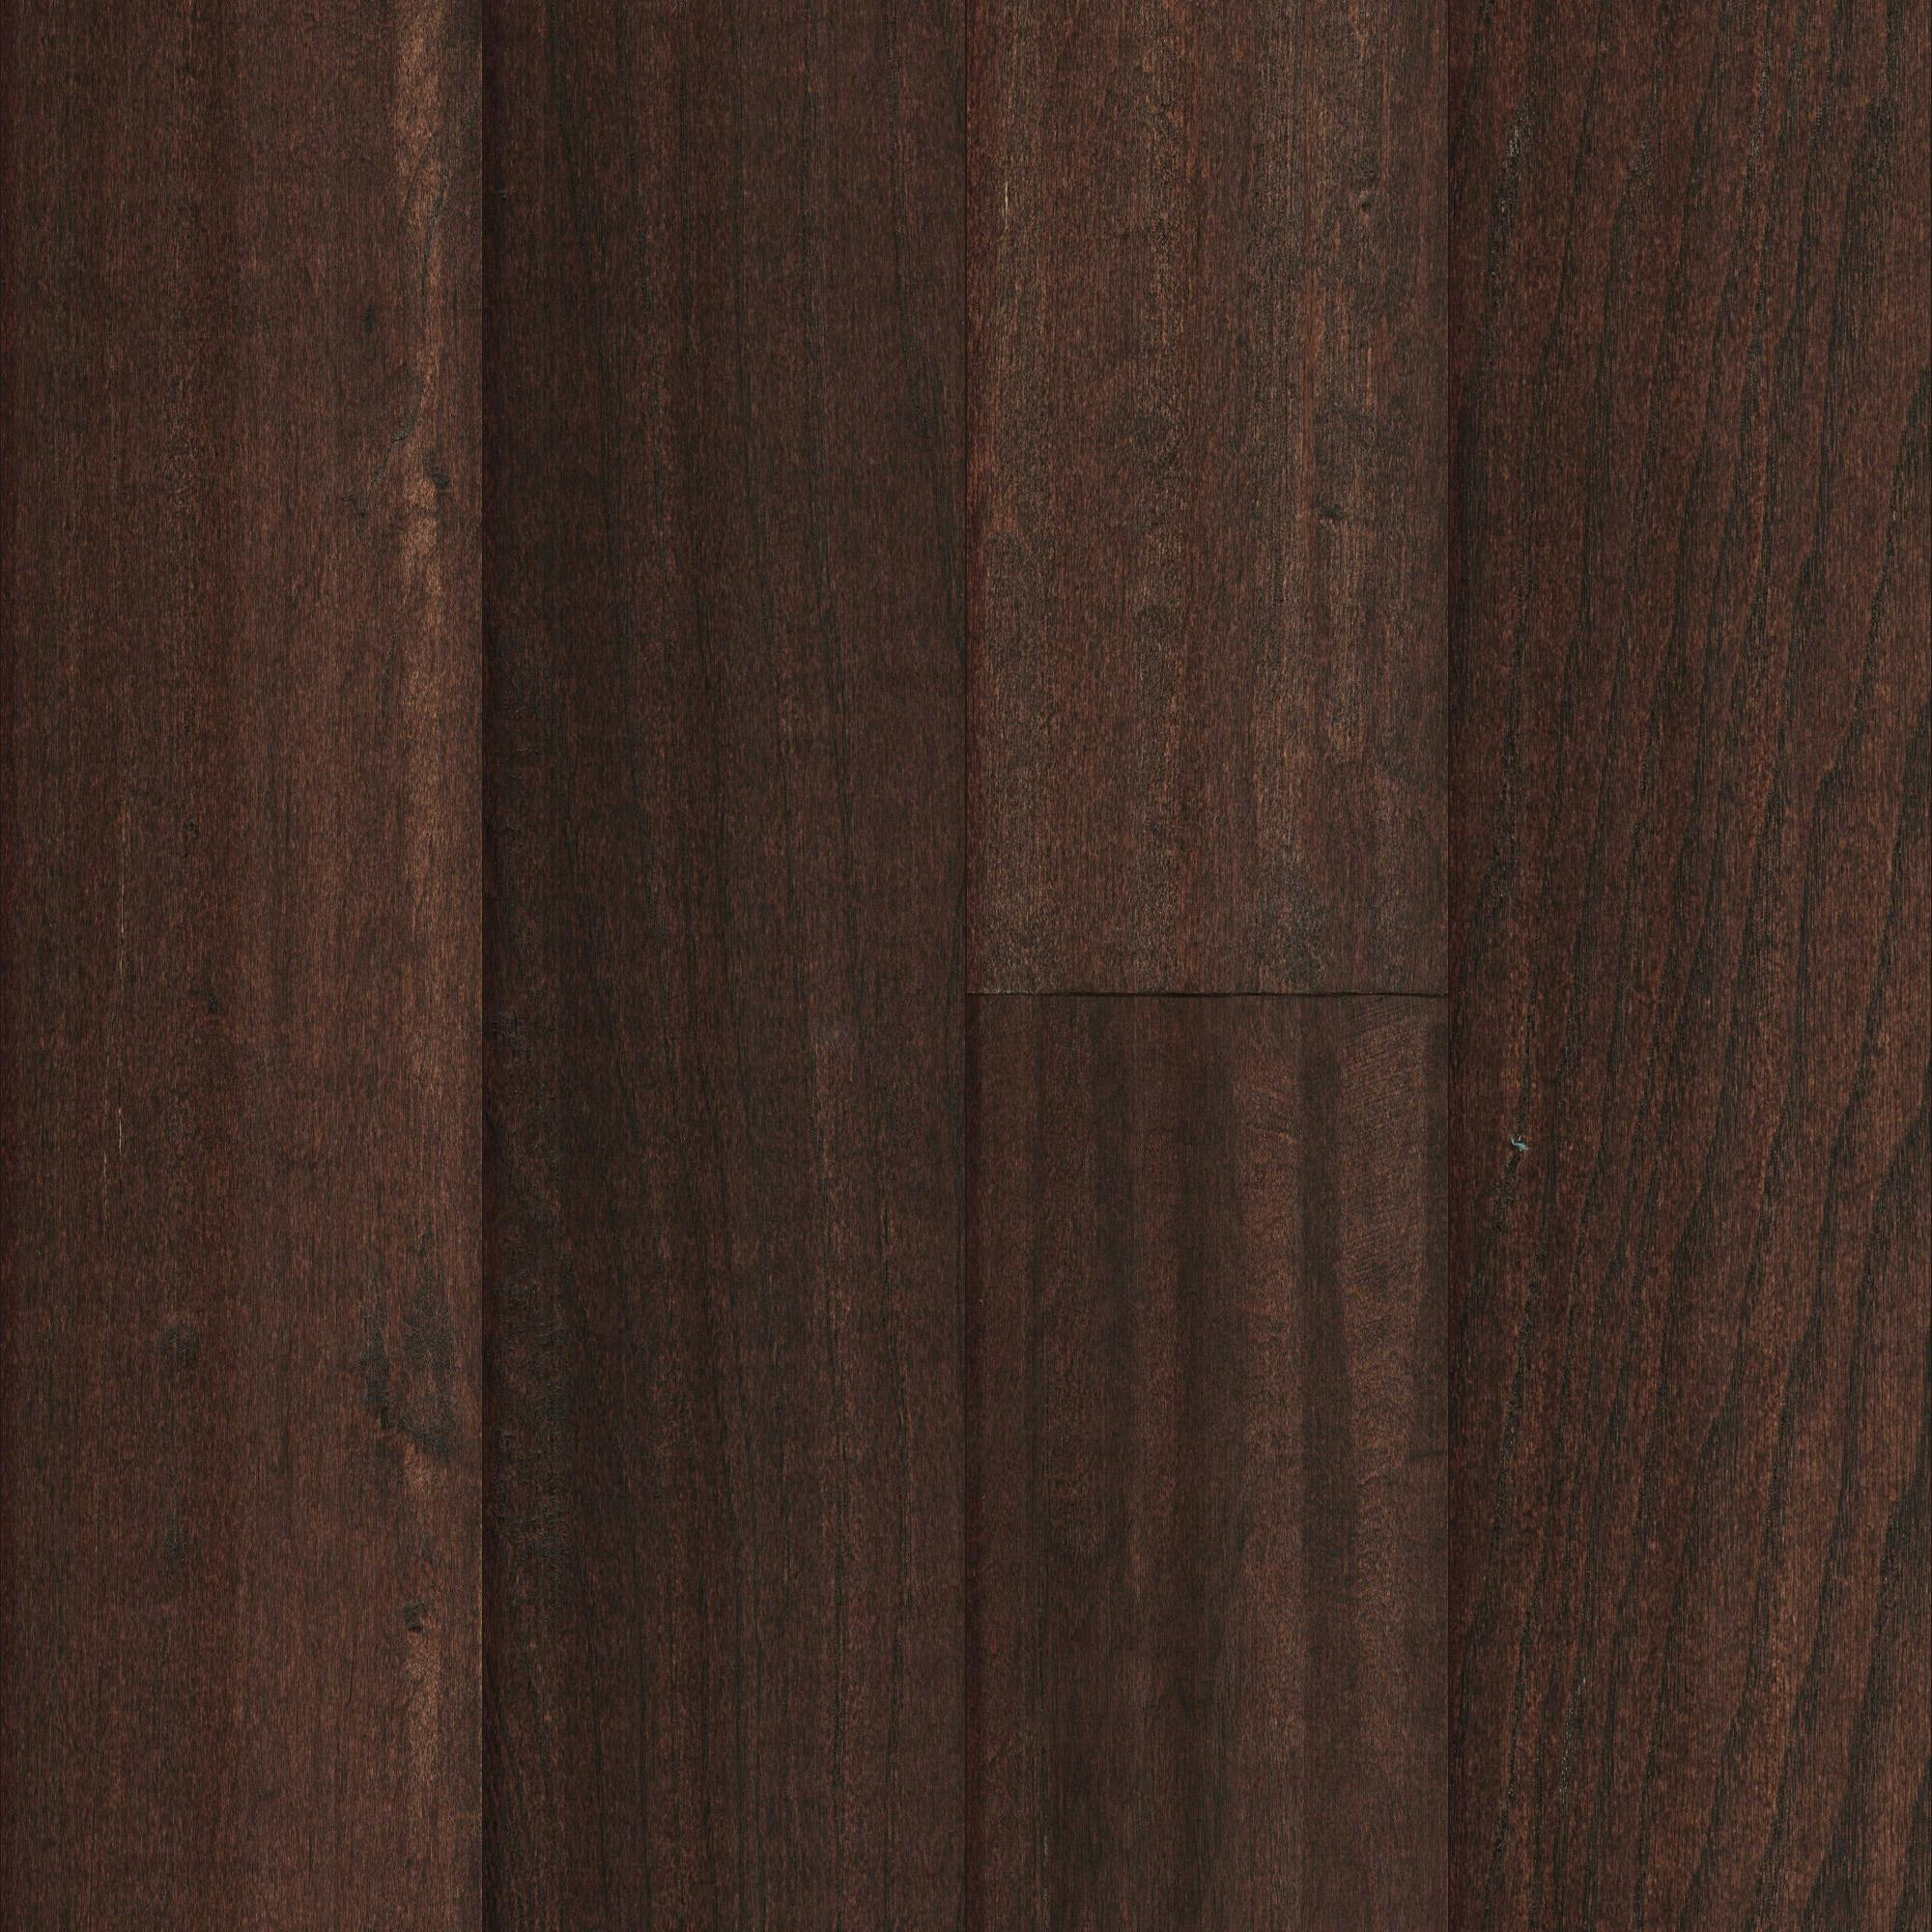 Unfinished Hardwood Flooring Nashville: Bruce Armstrong Maple Flooring